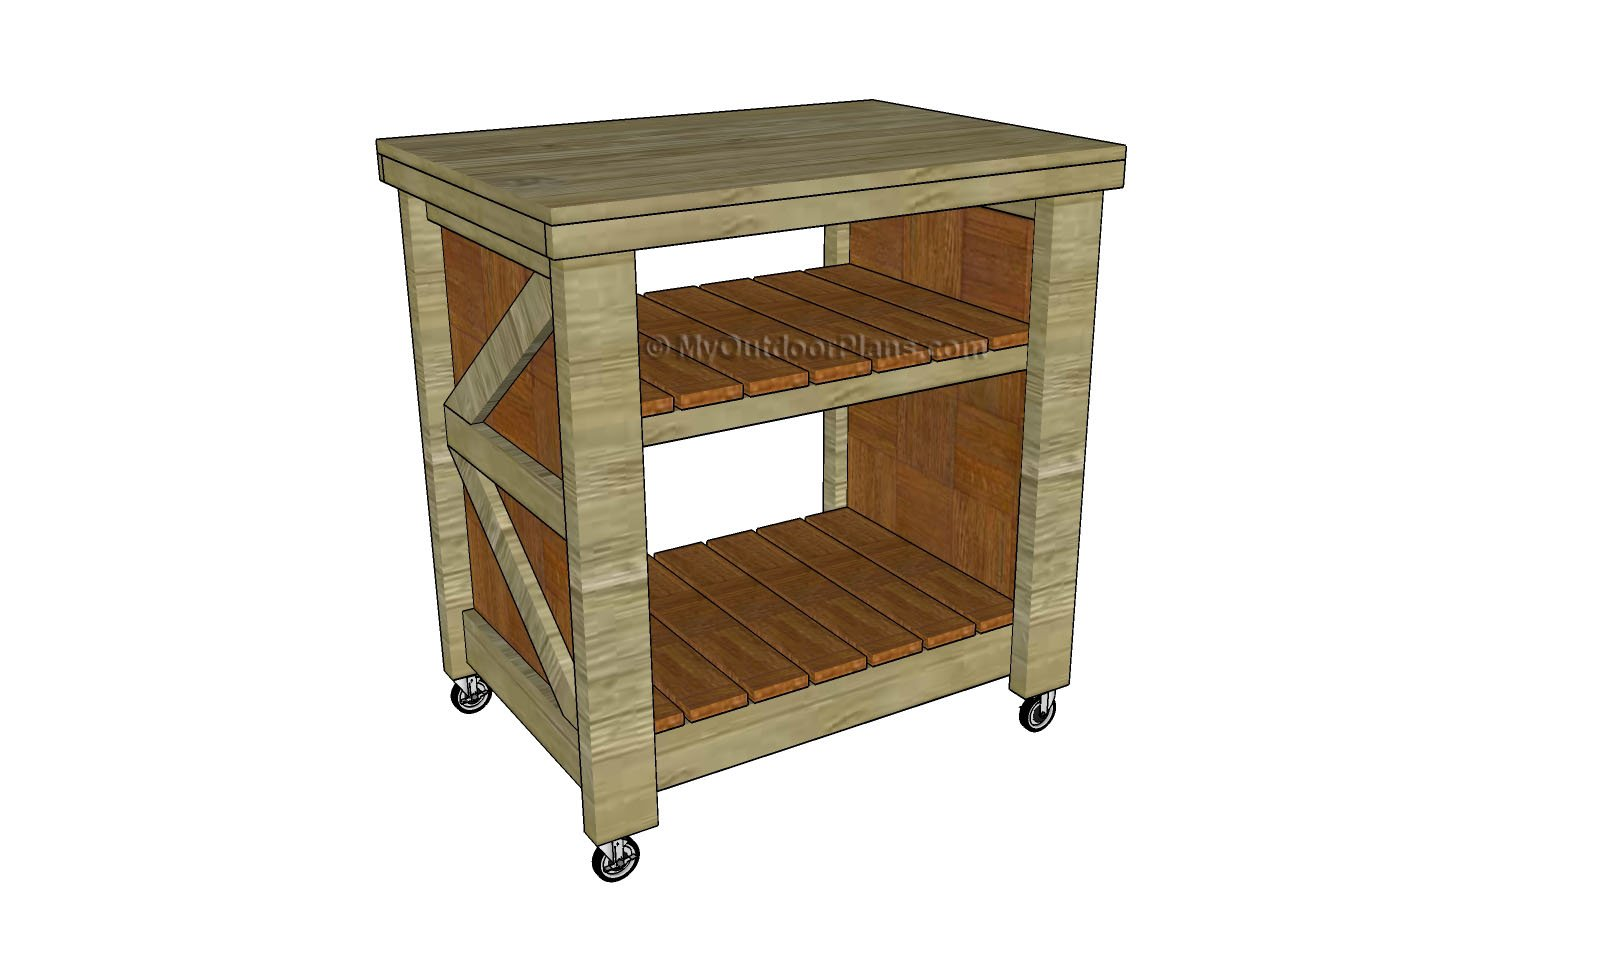 small kitchen island plans free outdoor plans diy shed wooden